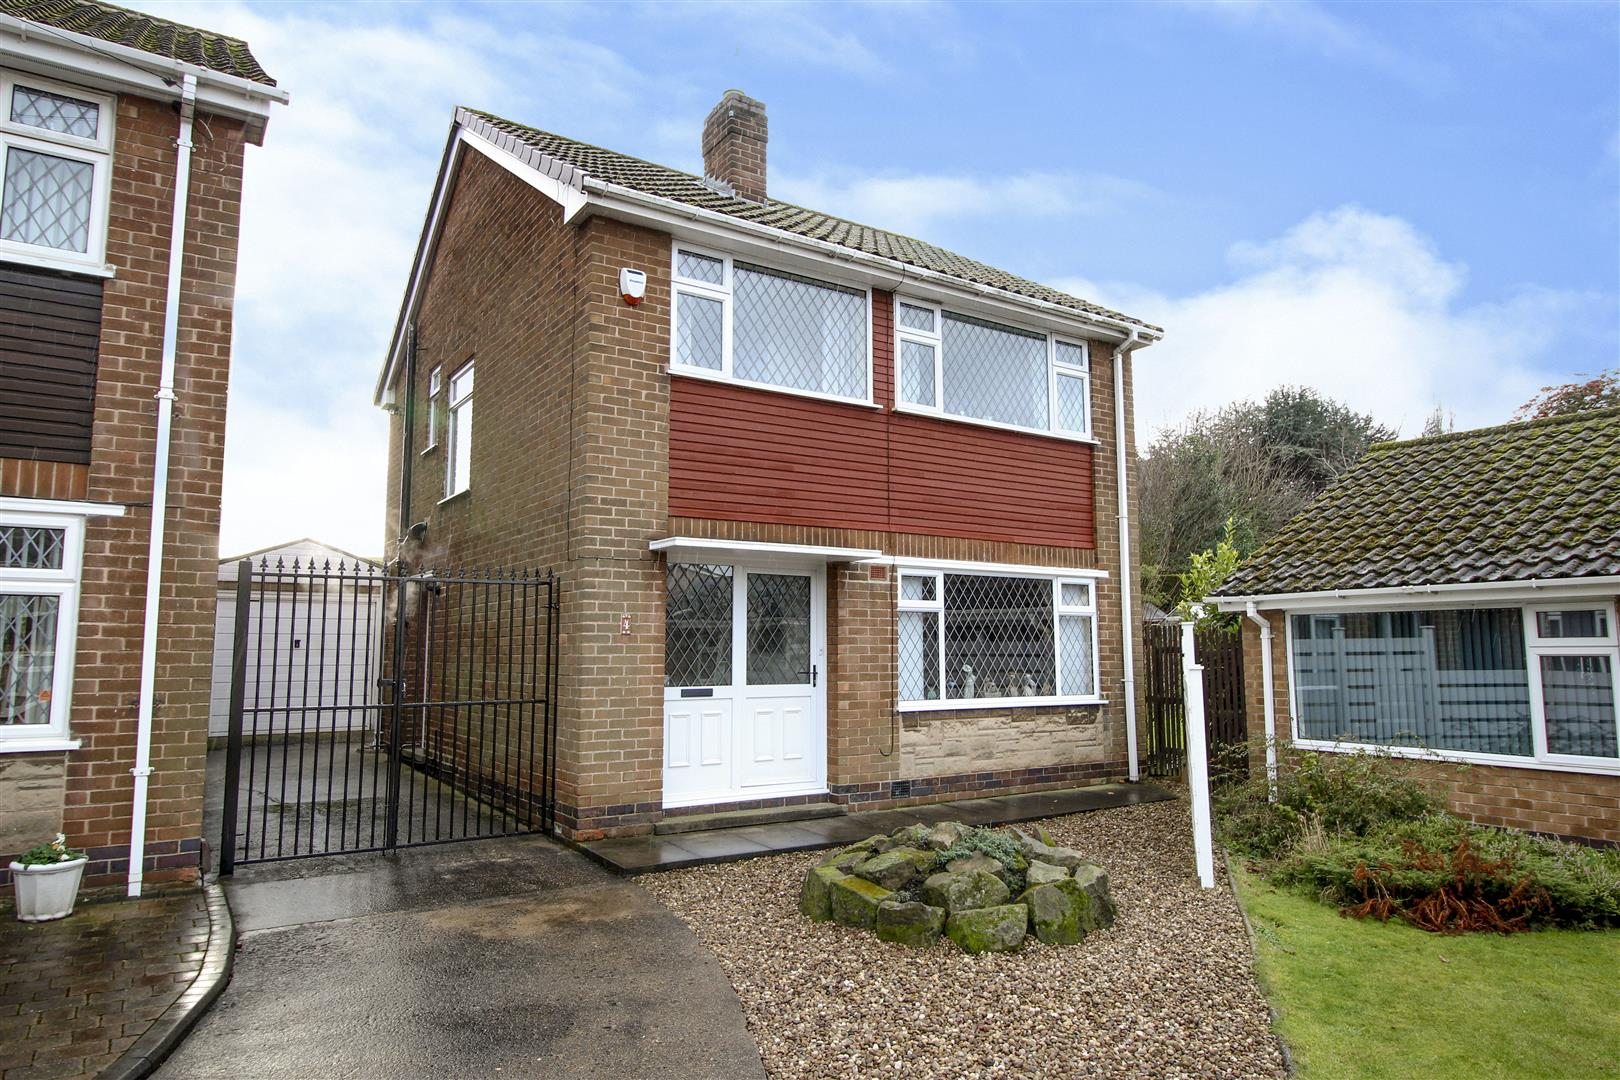 3 Bedrooms Detached House for sale in Eleanor Crescent, Stapleford,